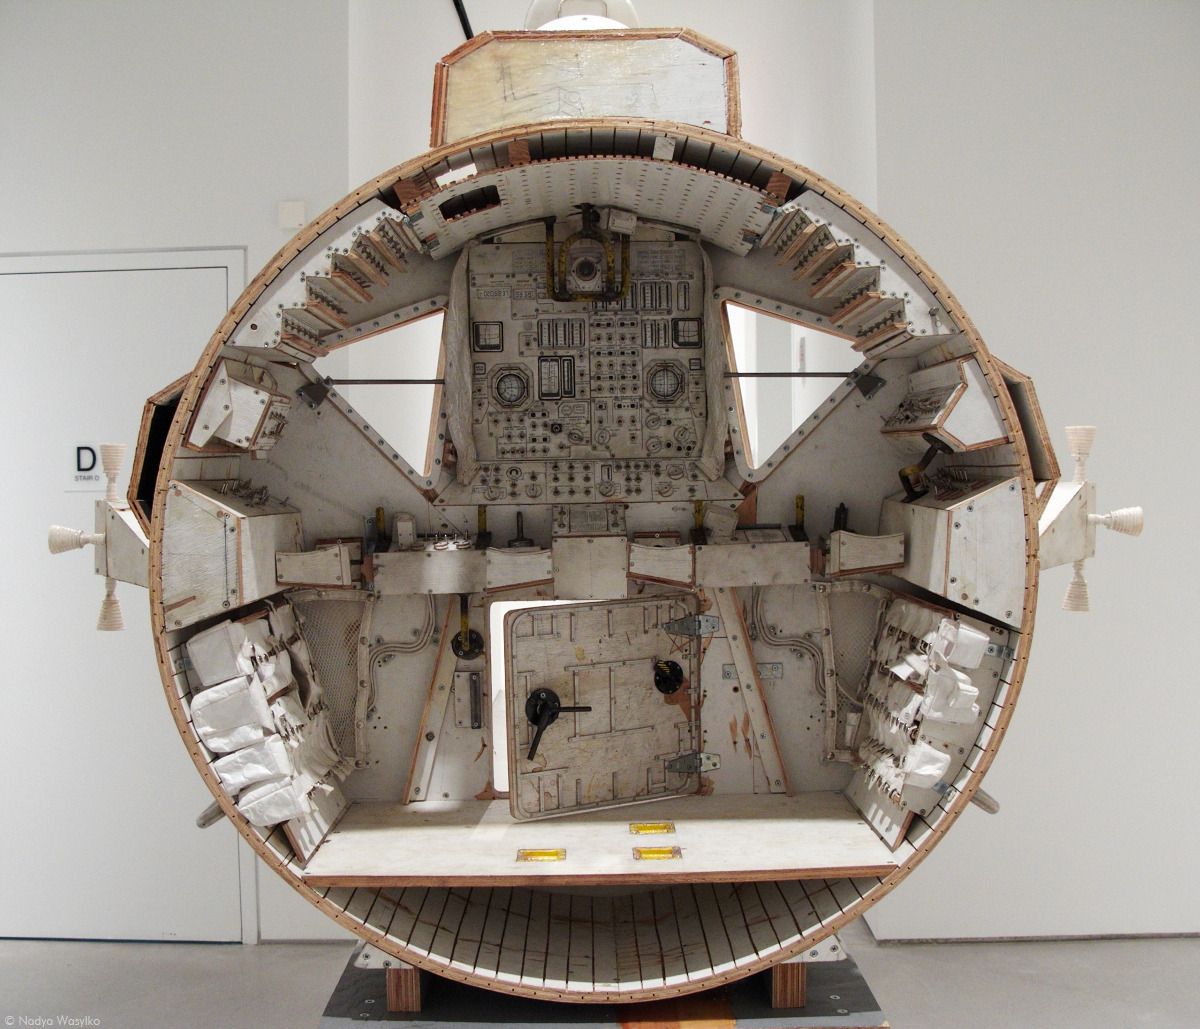 Tom Sachs spaceship cockpit, interior view, at WORK, his recent show at Sperone Westwater gallery on the Bowery. Dec 2011